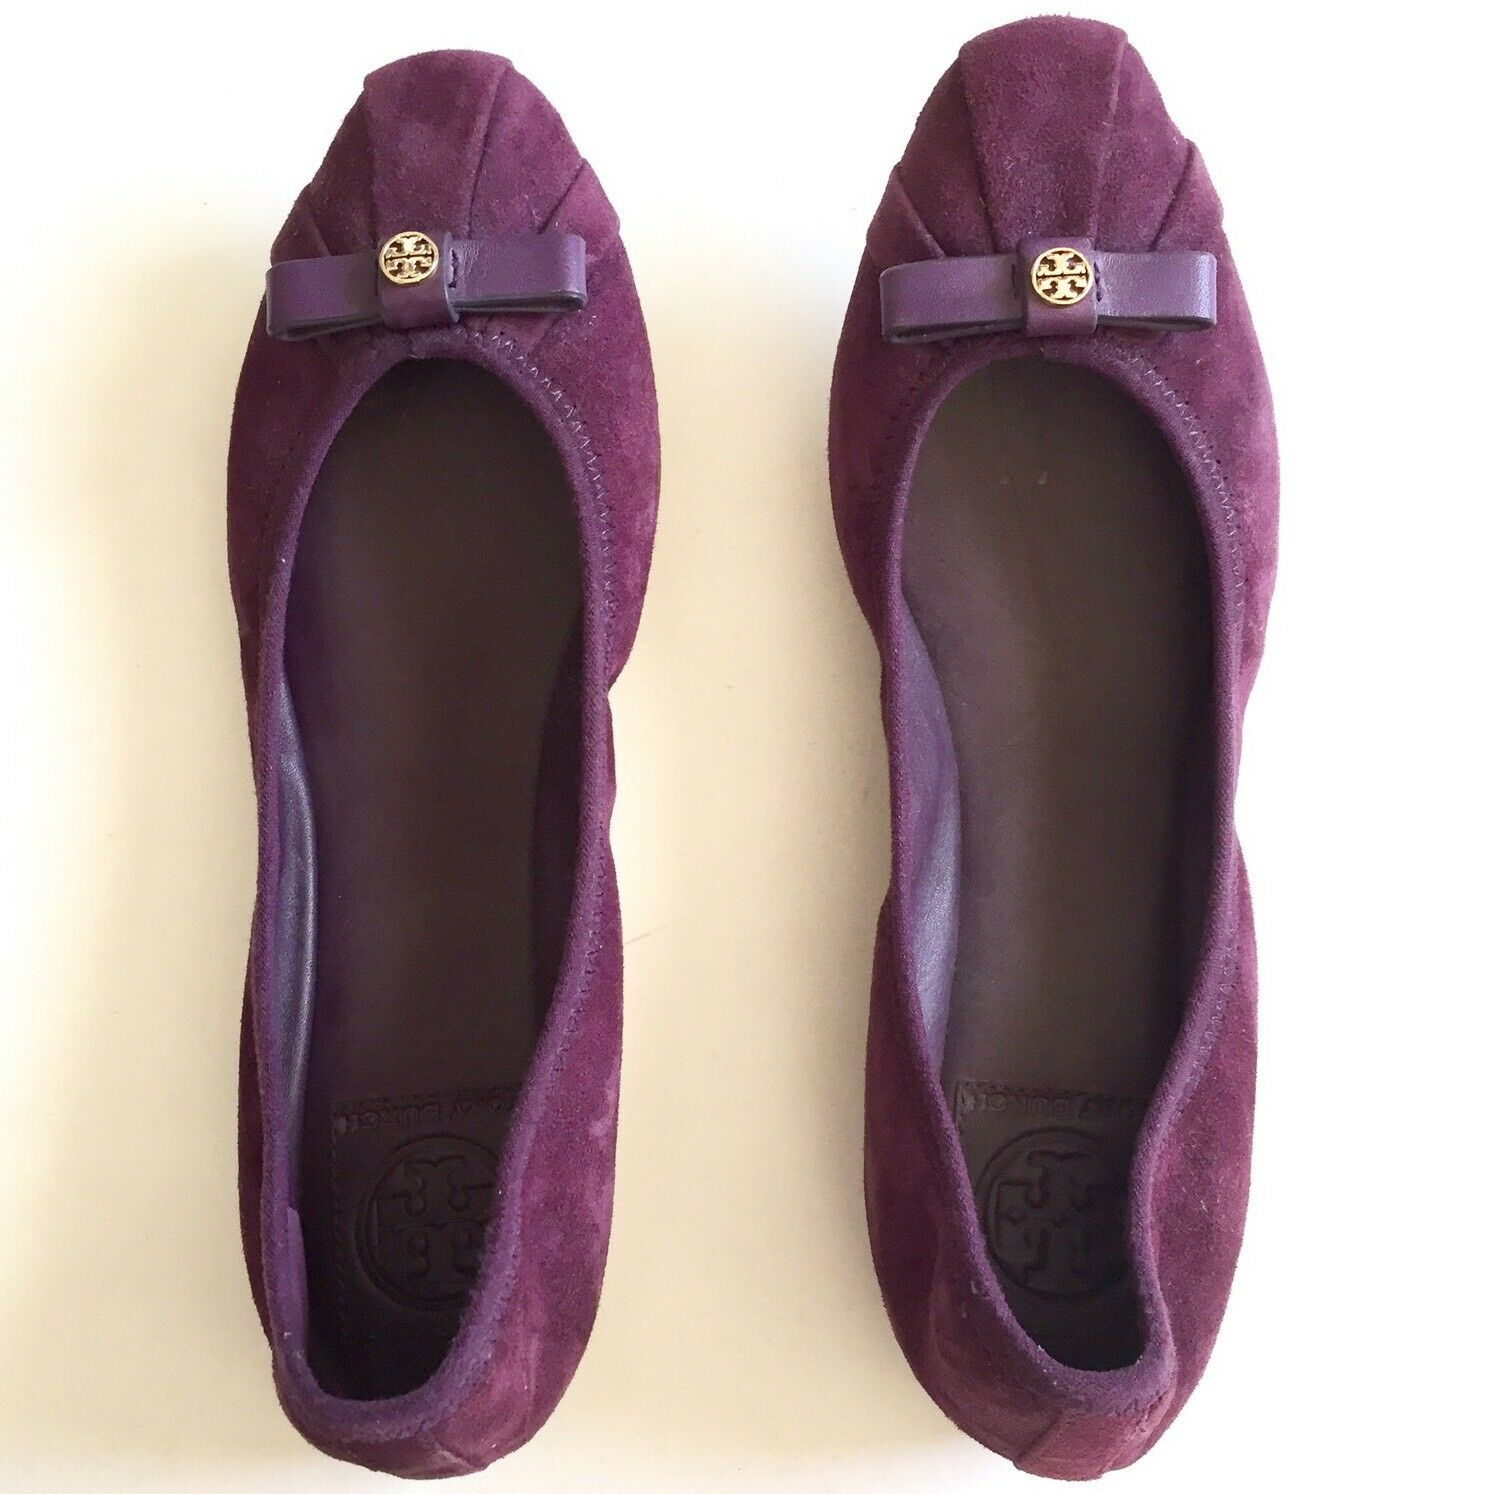 Tory Burch Womens Purple Suede Leather Bow Ballet Flats shoes Size 7M Pleated